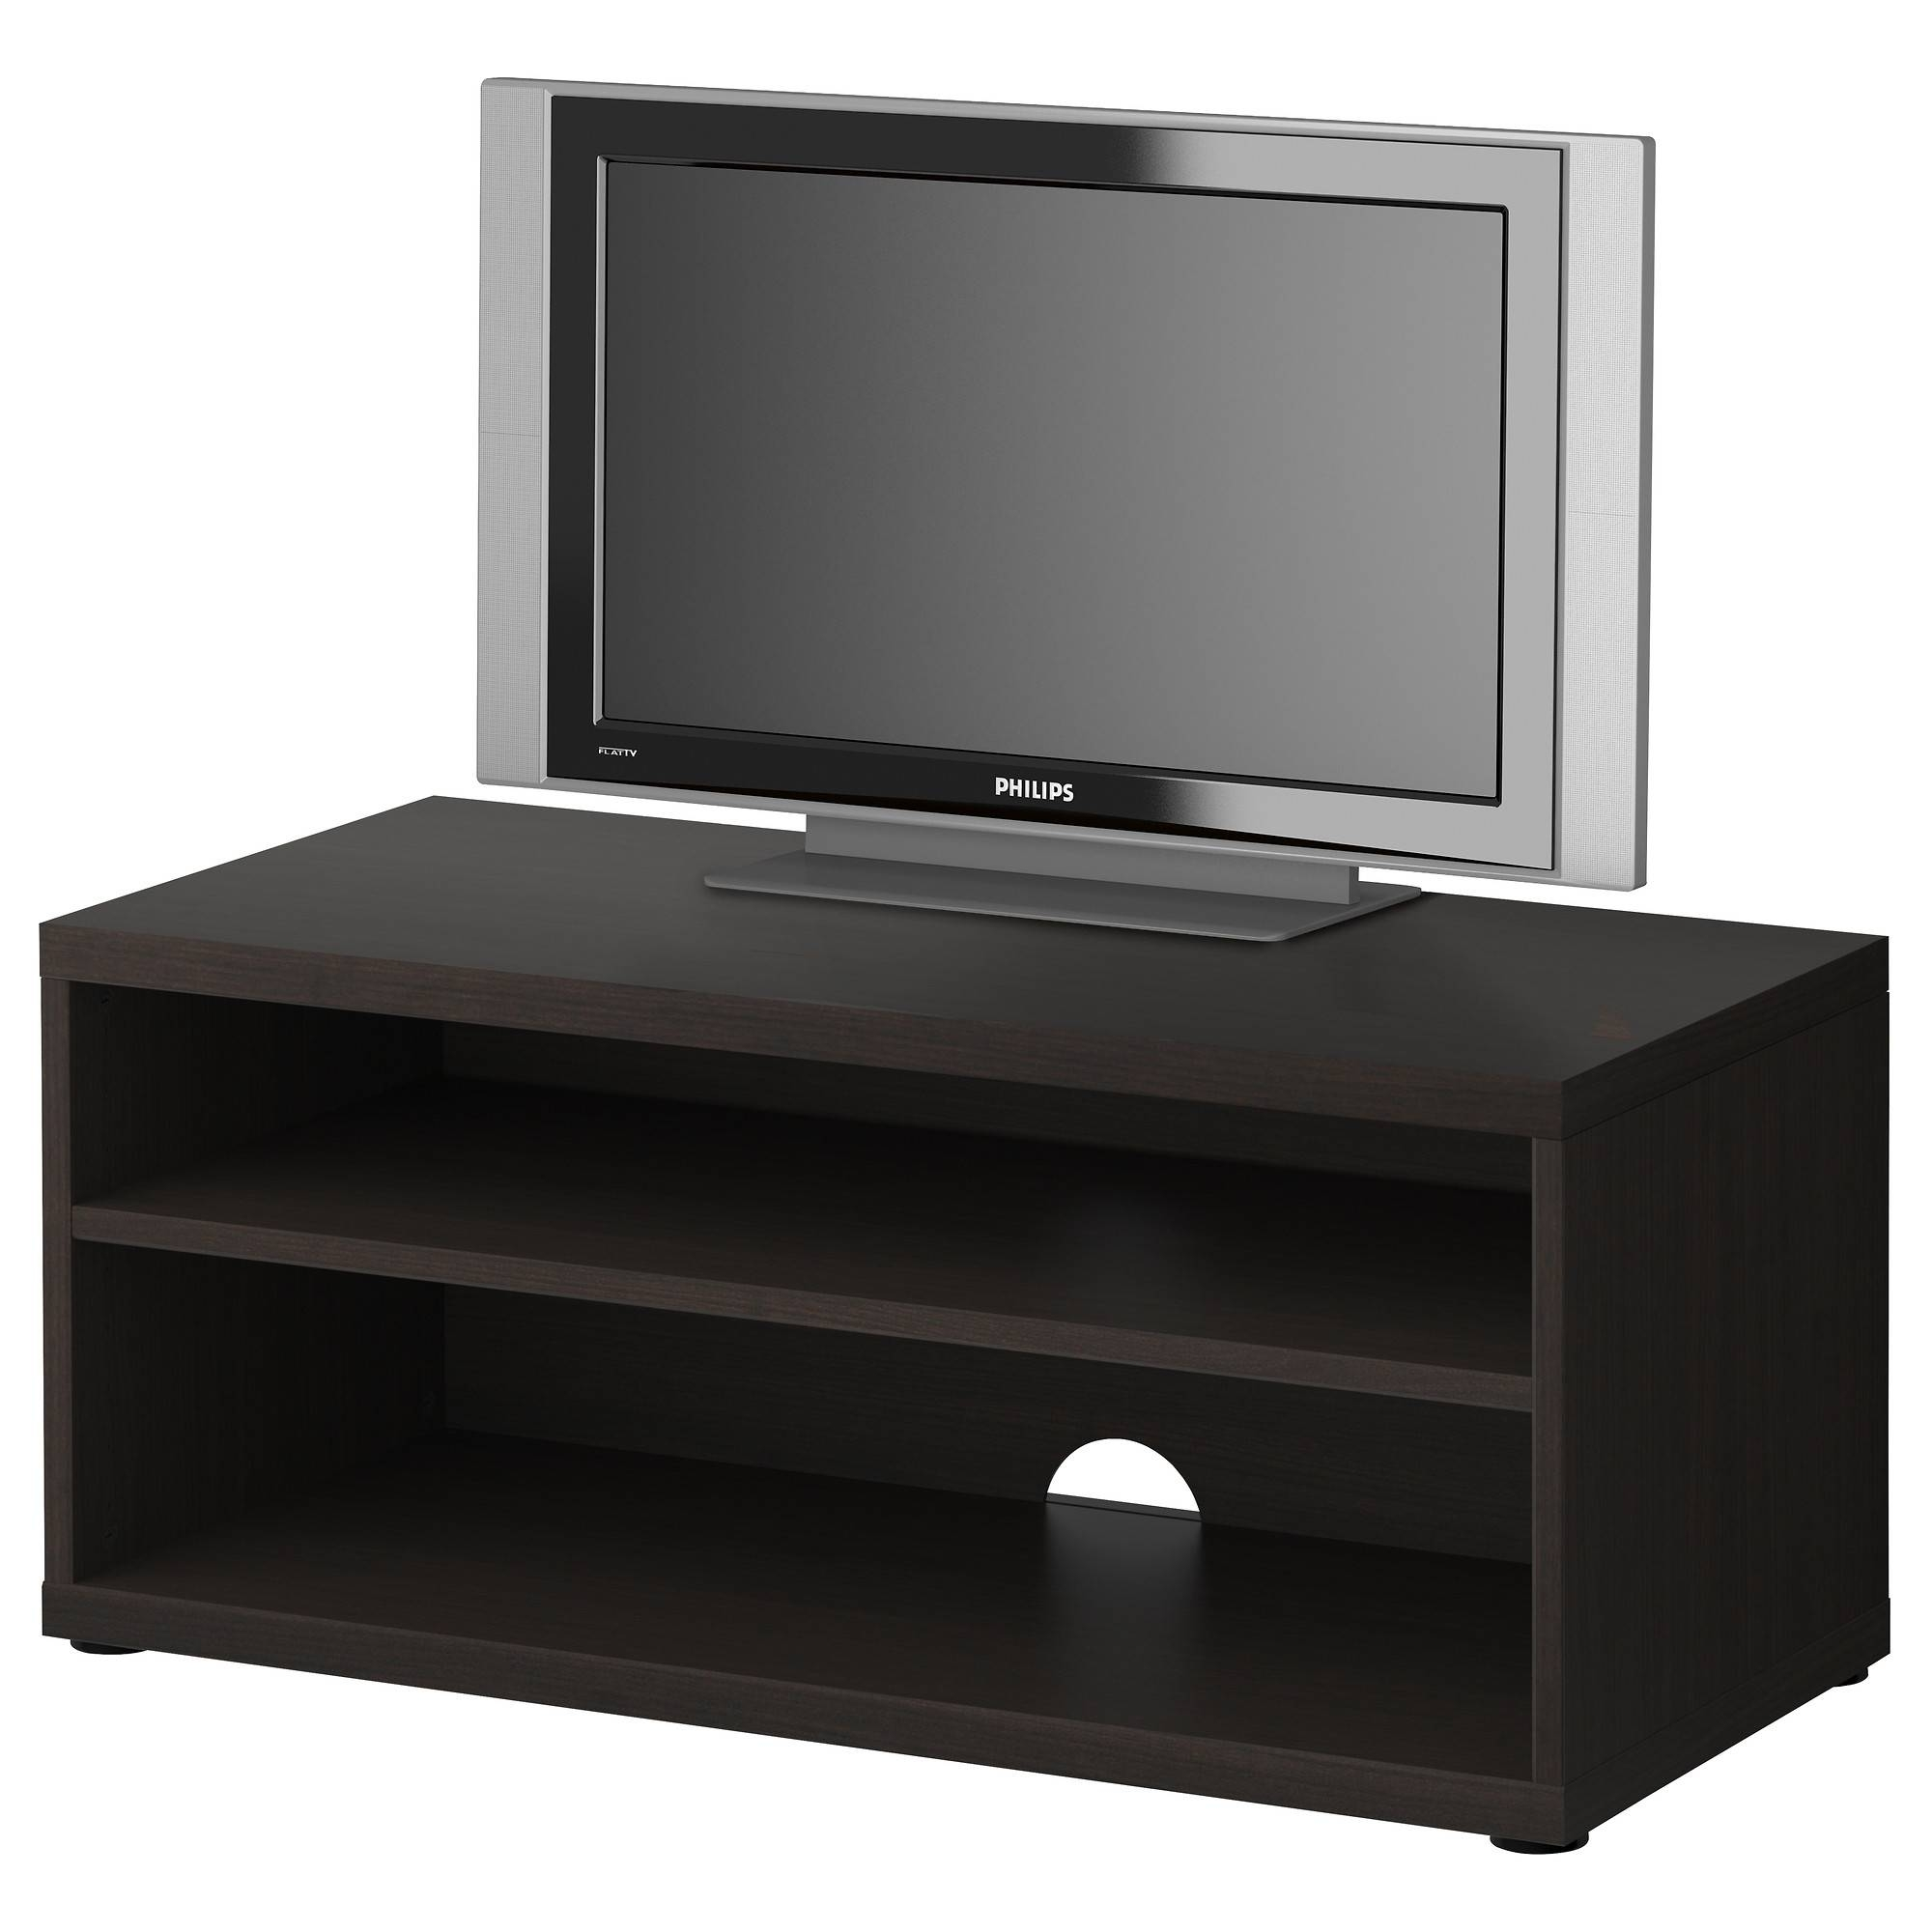 Tv Media Furniture – Tv Stands, Cabinets & Media Storage - Ikea pertaining to Cheap Wood Tv Stands (Image 9 of 15)